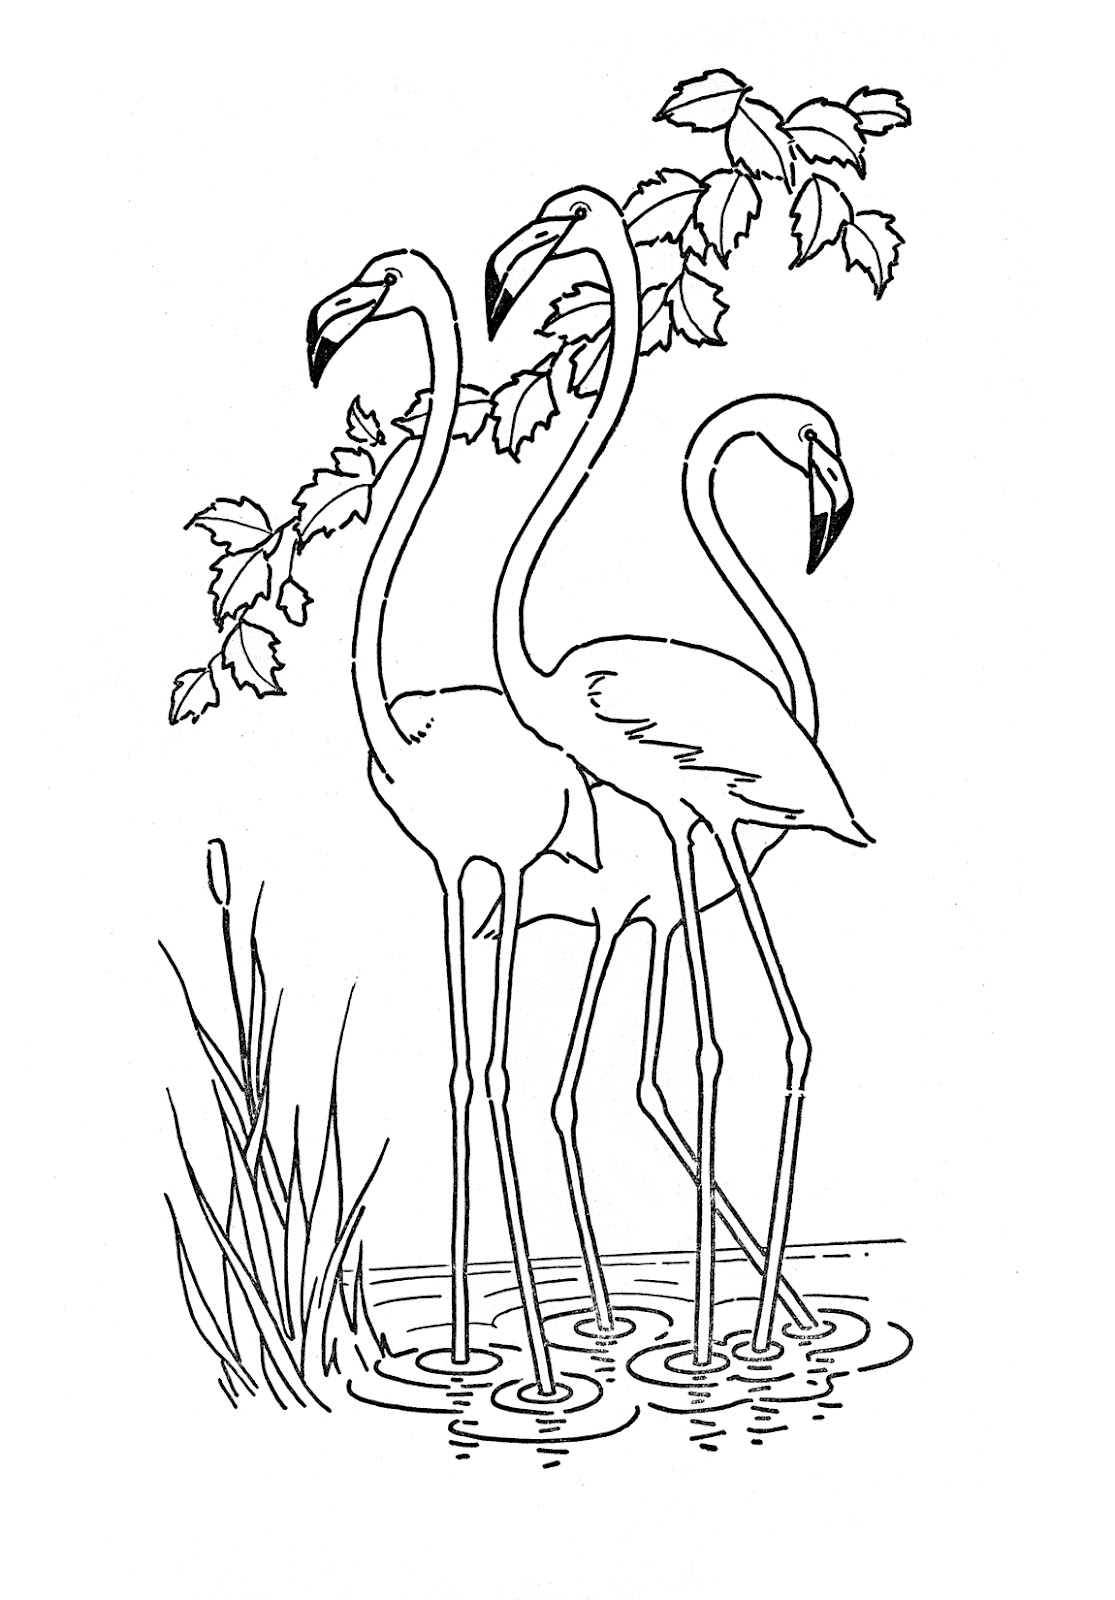 printables coloring pages free printable tangled coloring pages for kids cool2bkids coloring printables pages 1 1